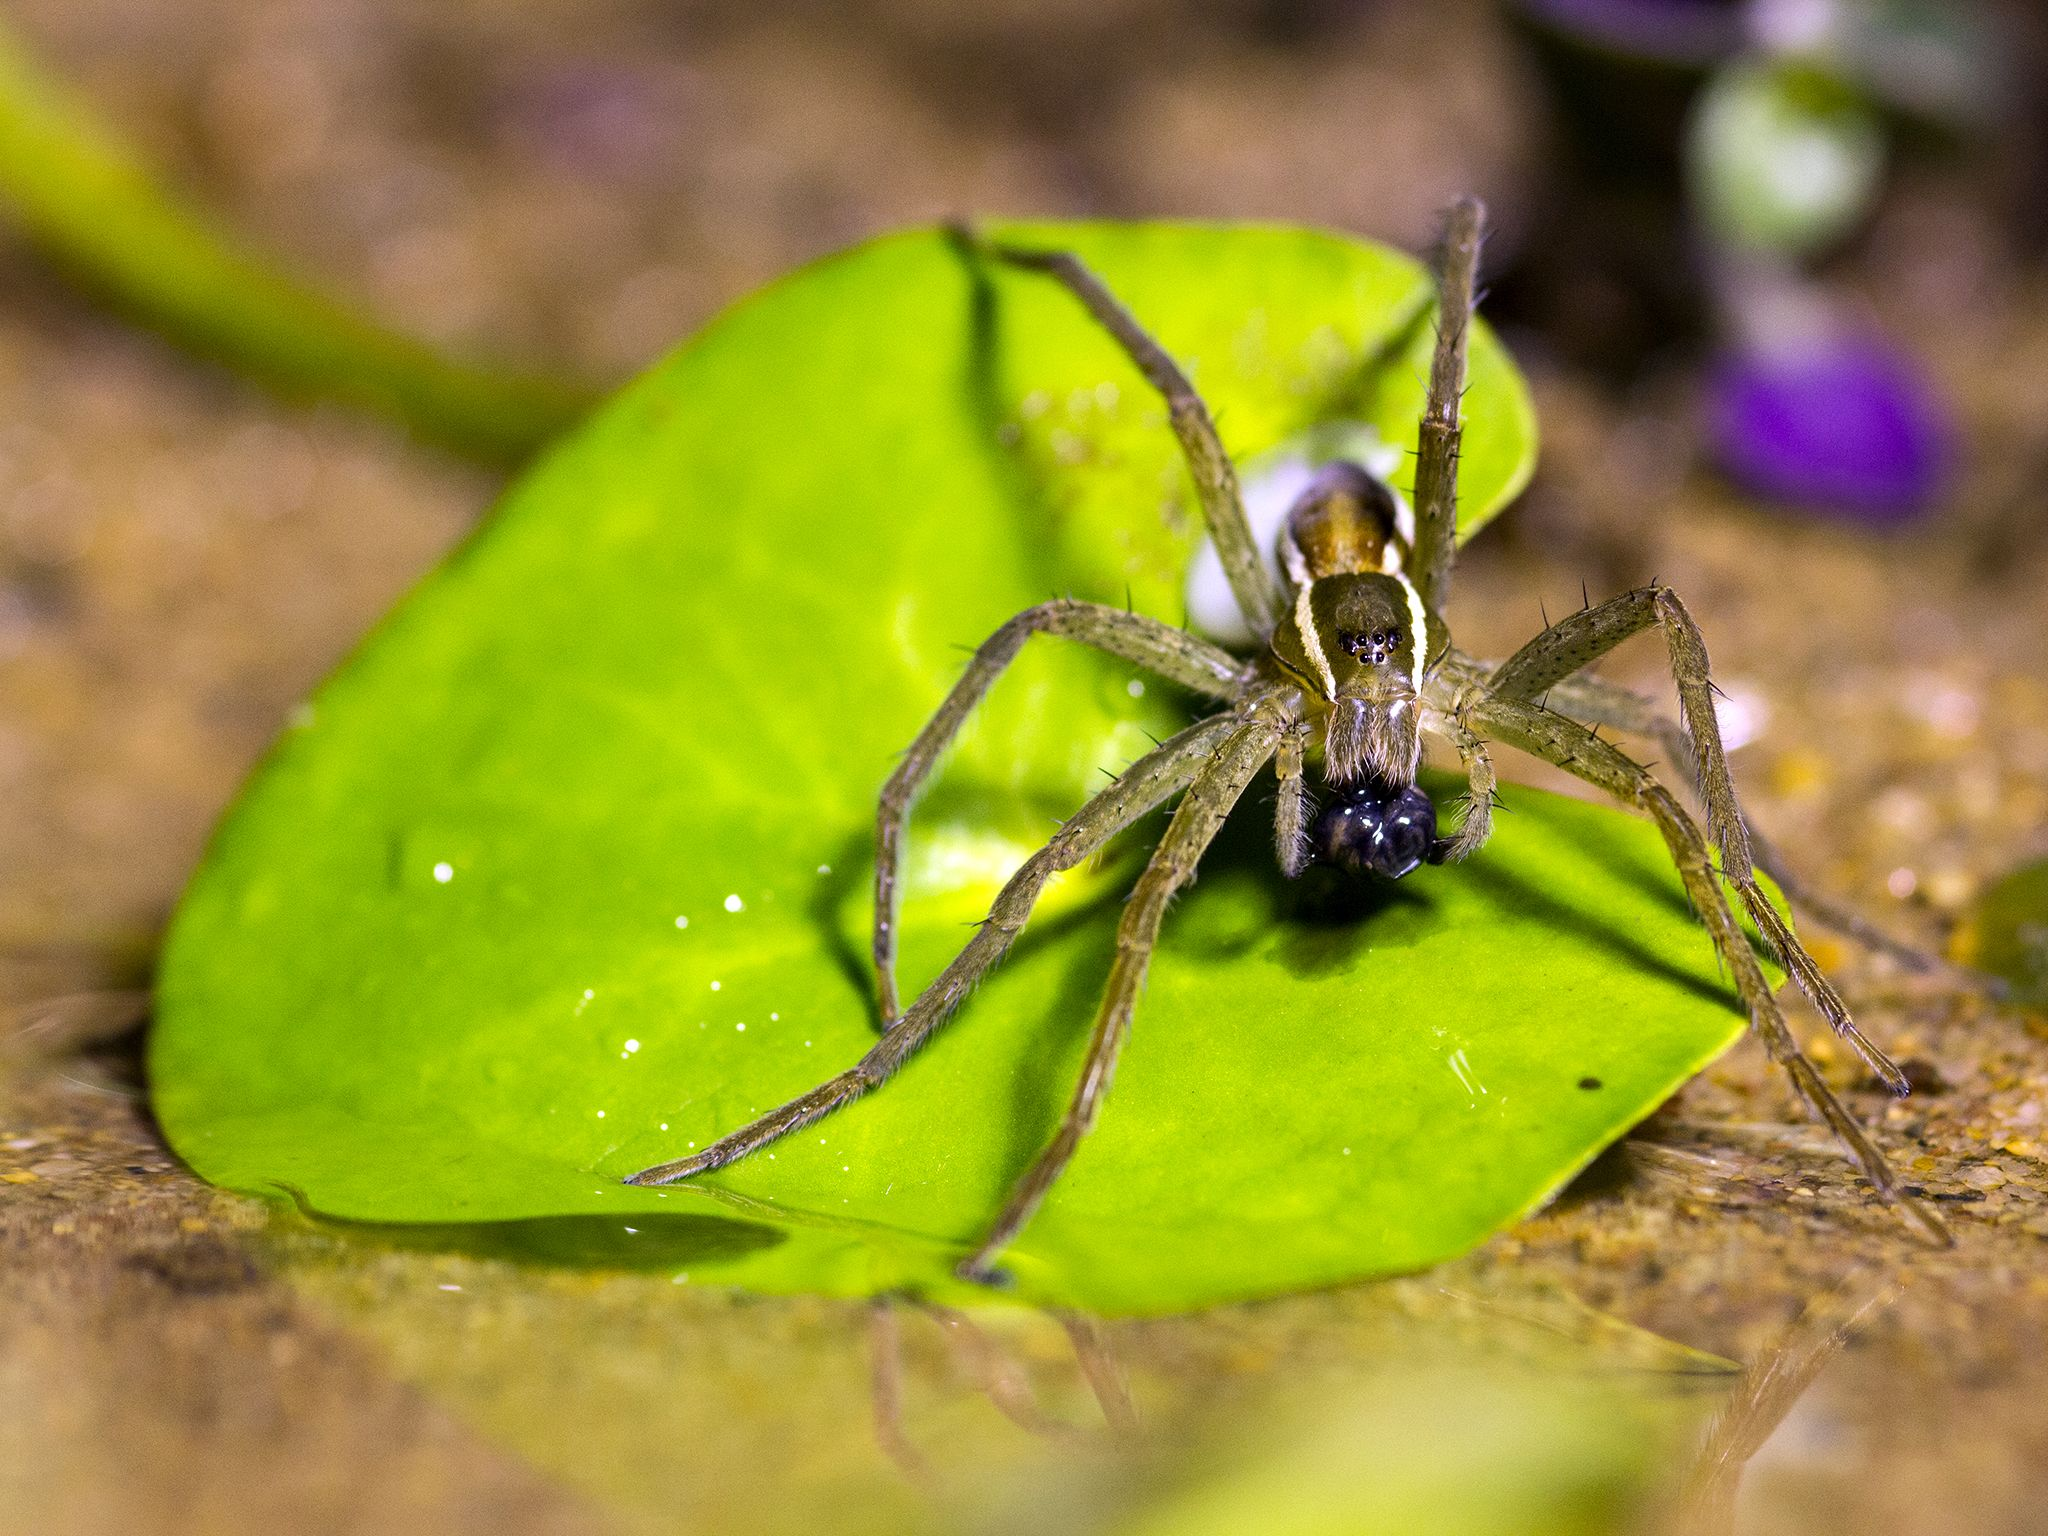 Durban, Kwazulu Natal, South Africa: Medium shot of the fishing spider. These spiders are... [Photo of the day - مارس 2016]